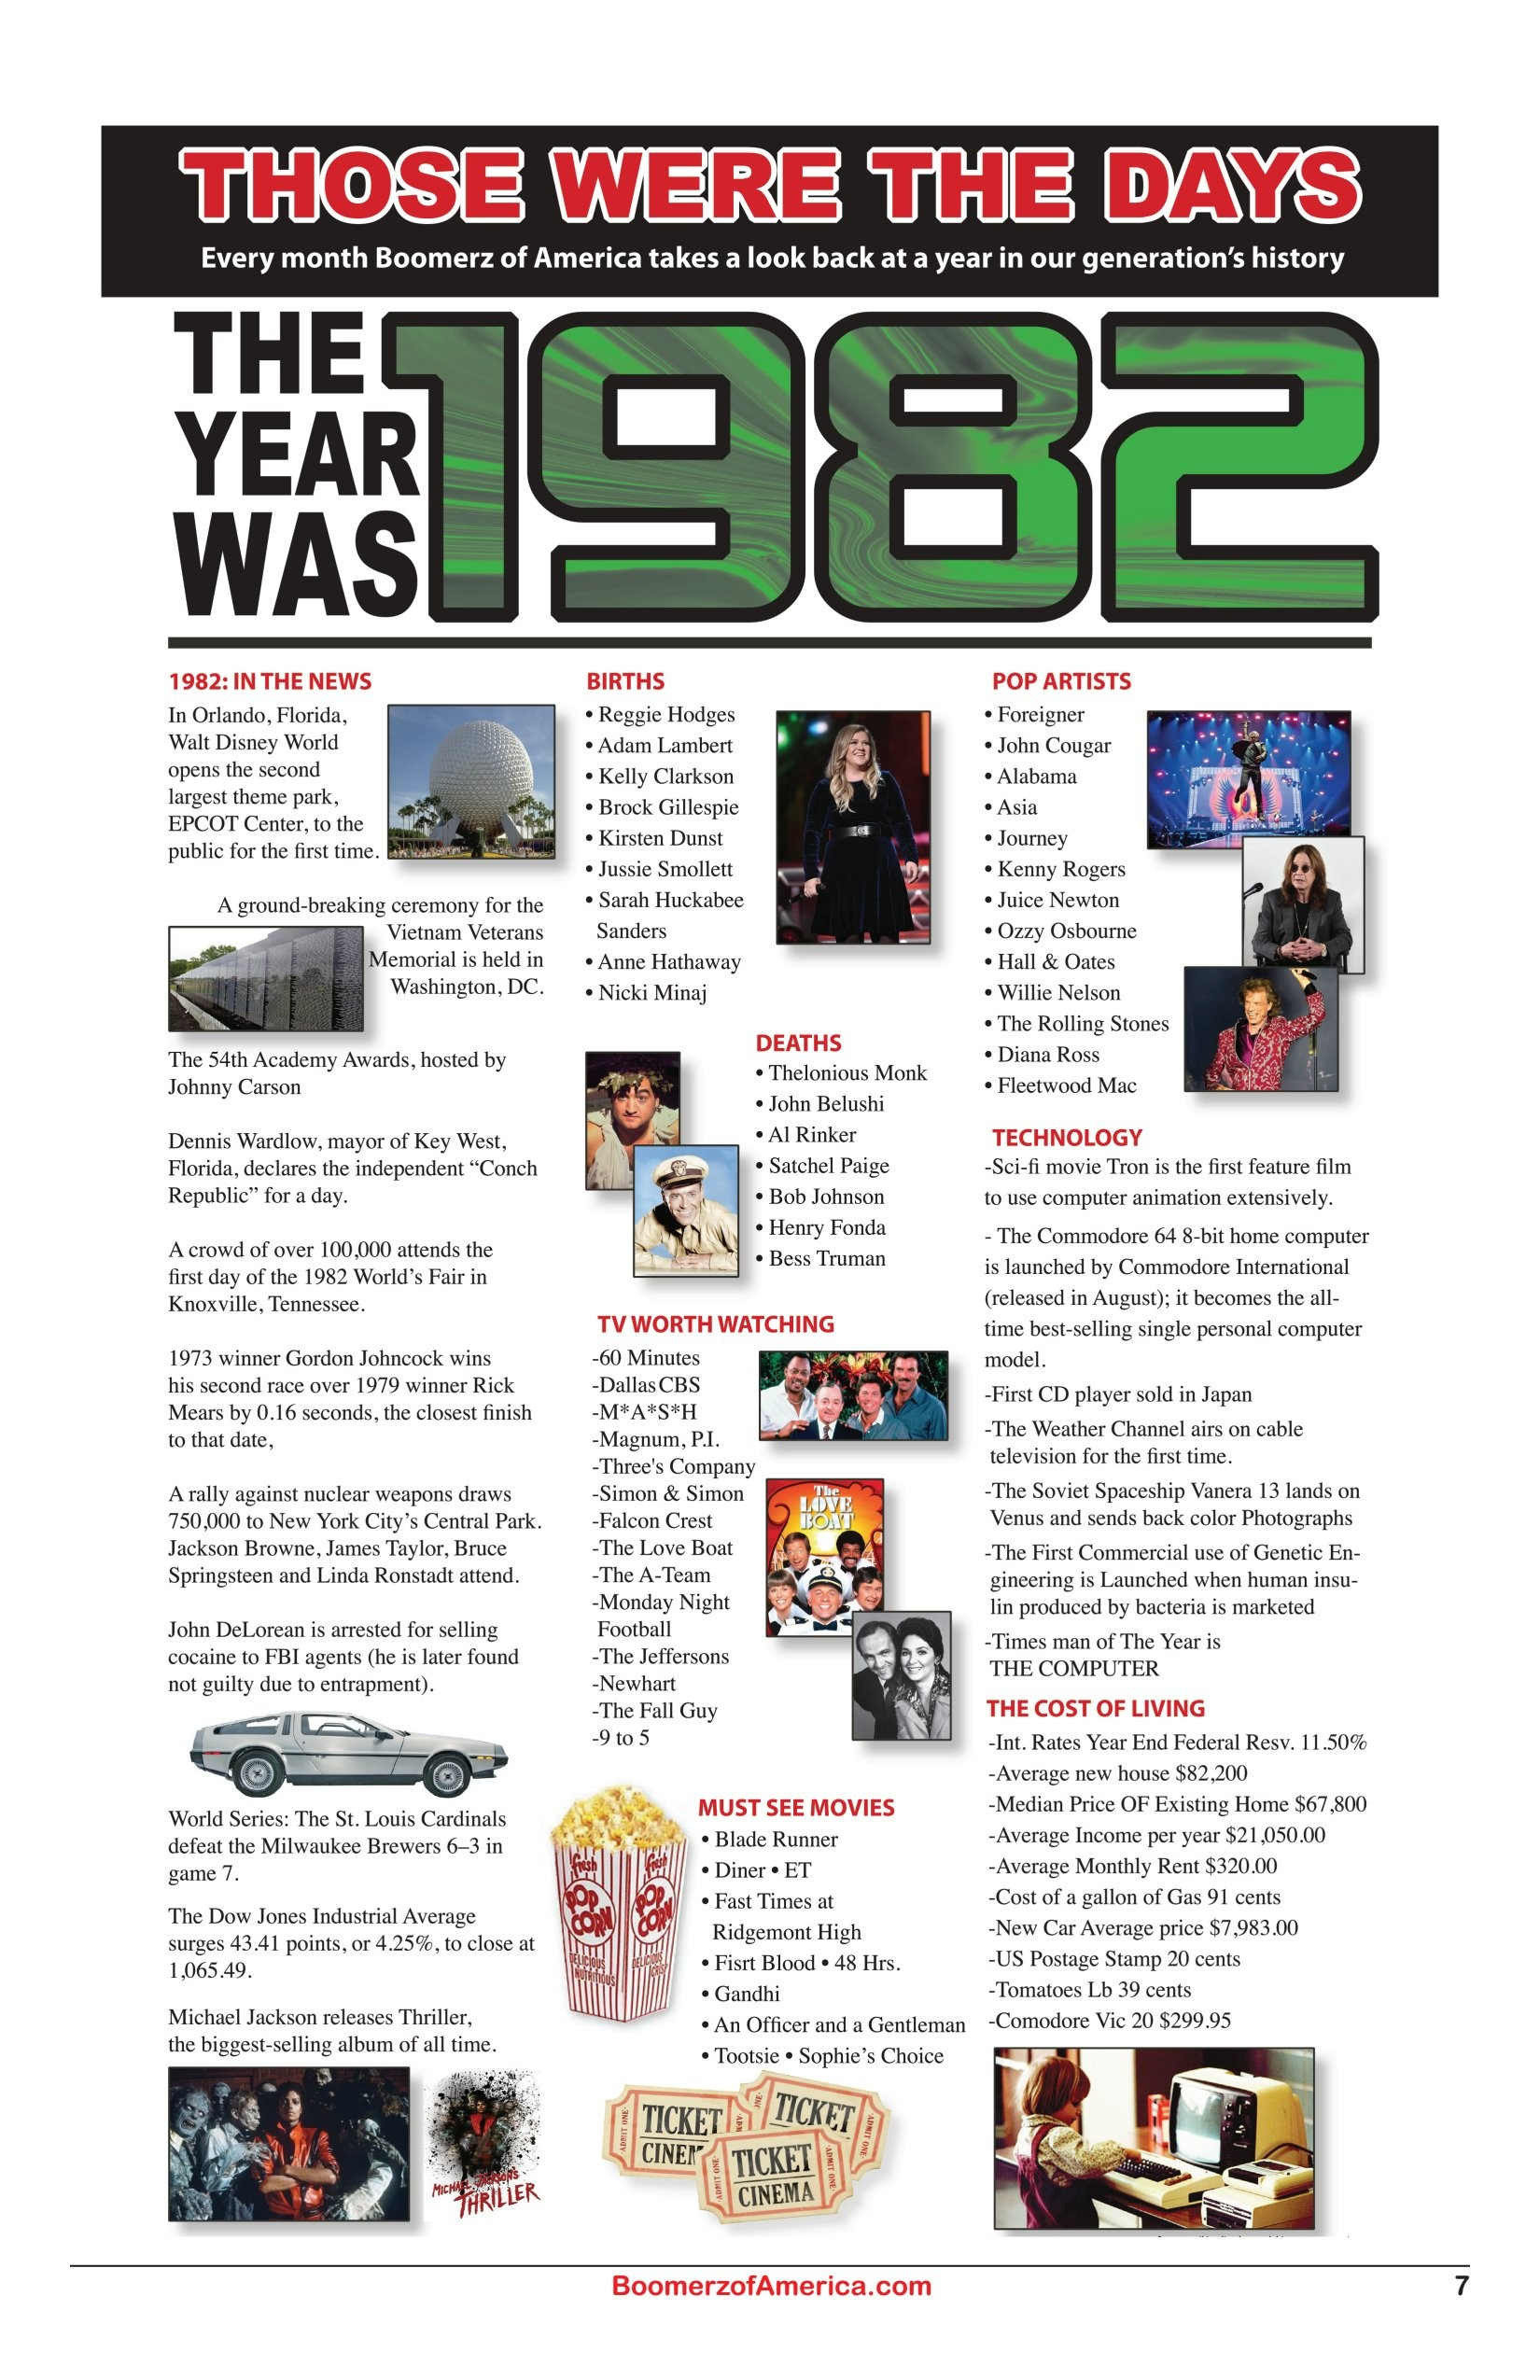 09-2019-boomerz-page-_7 The Year Was 1982